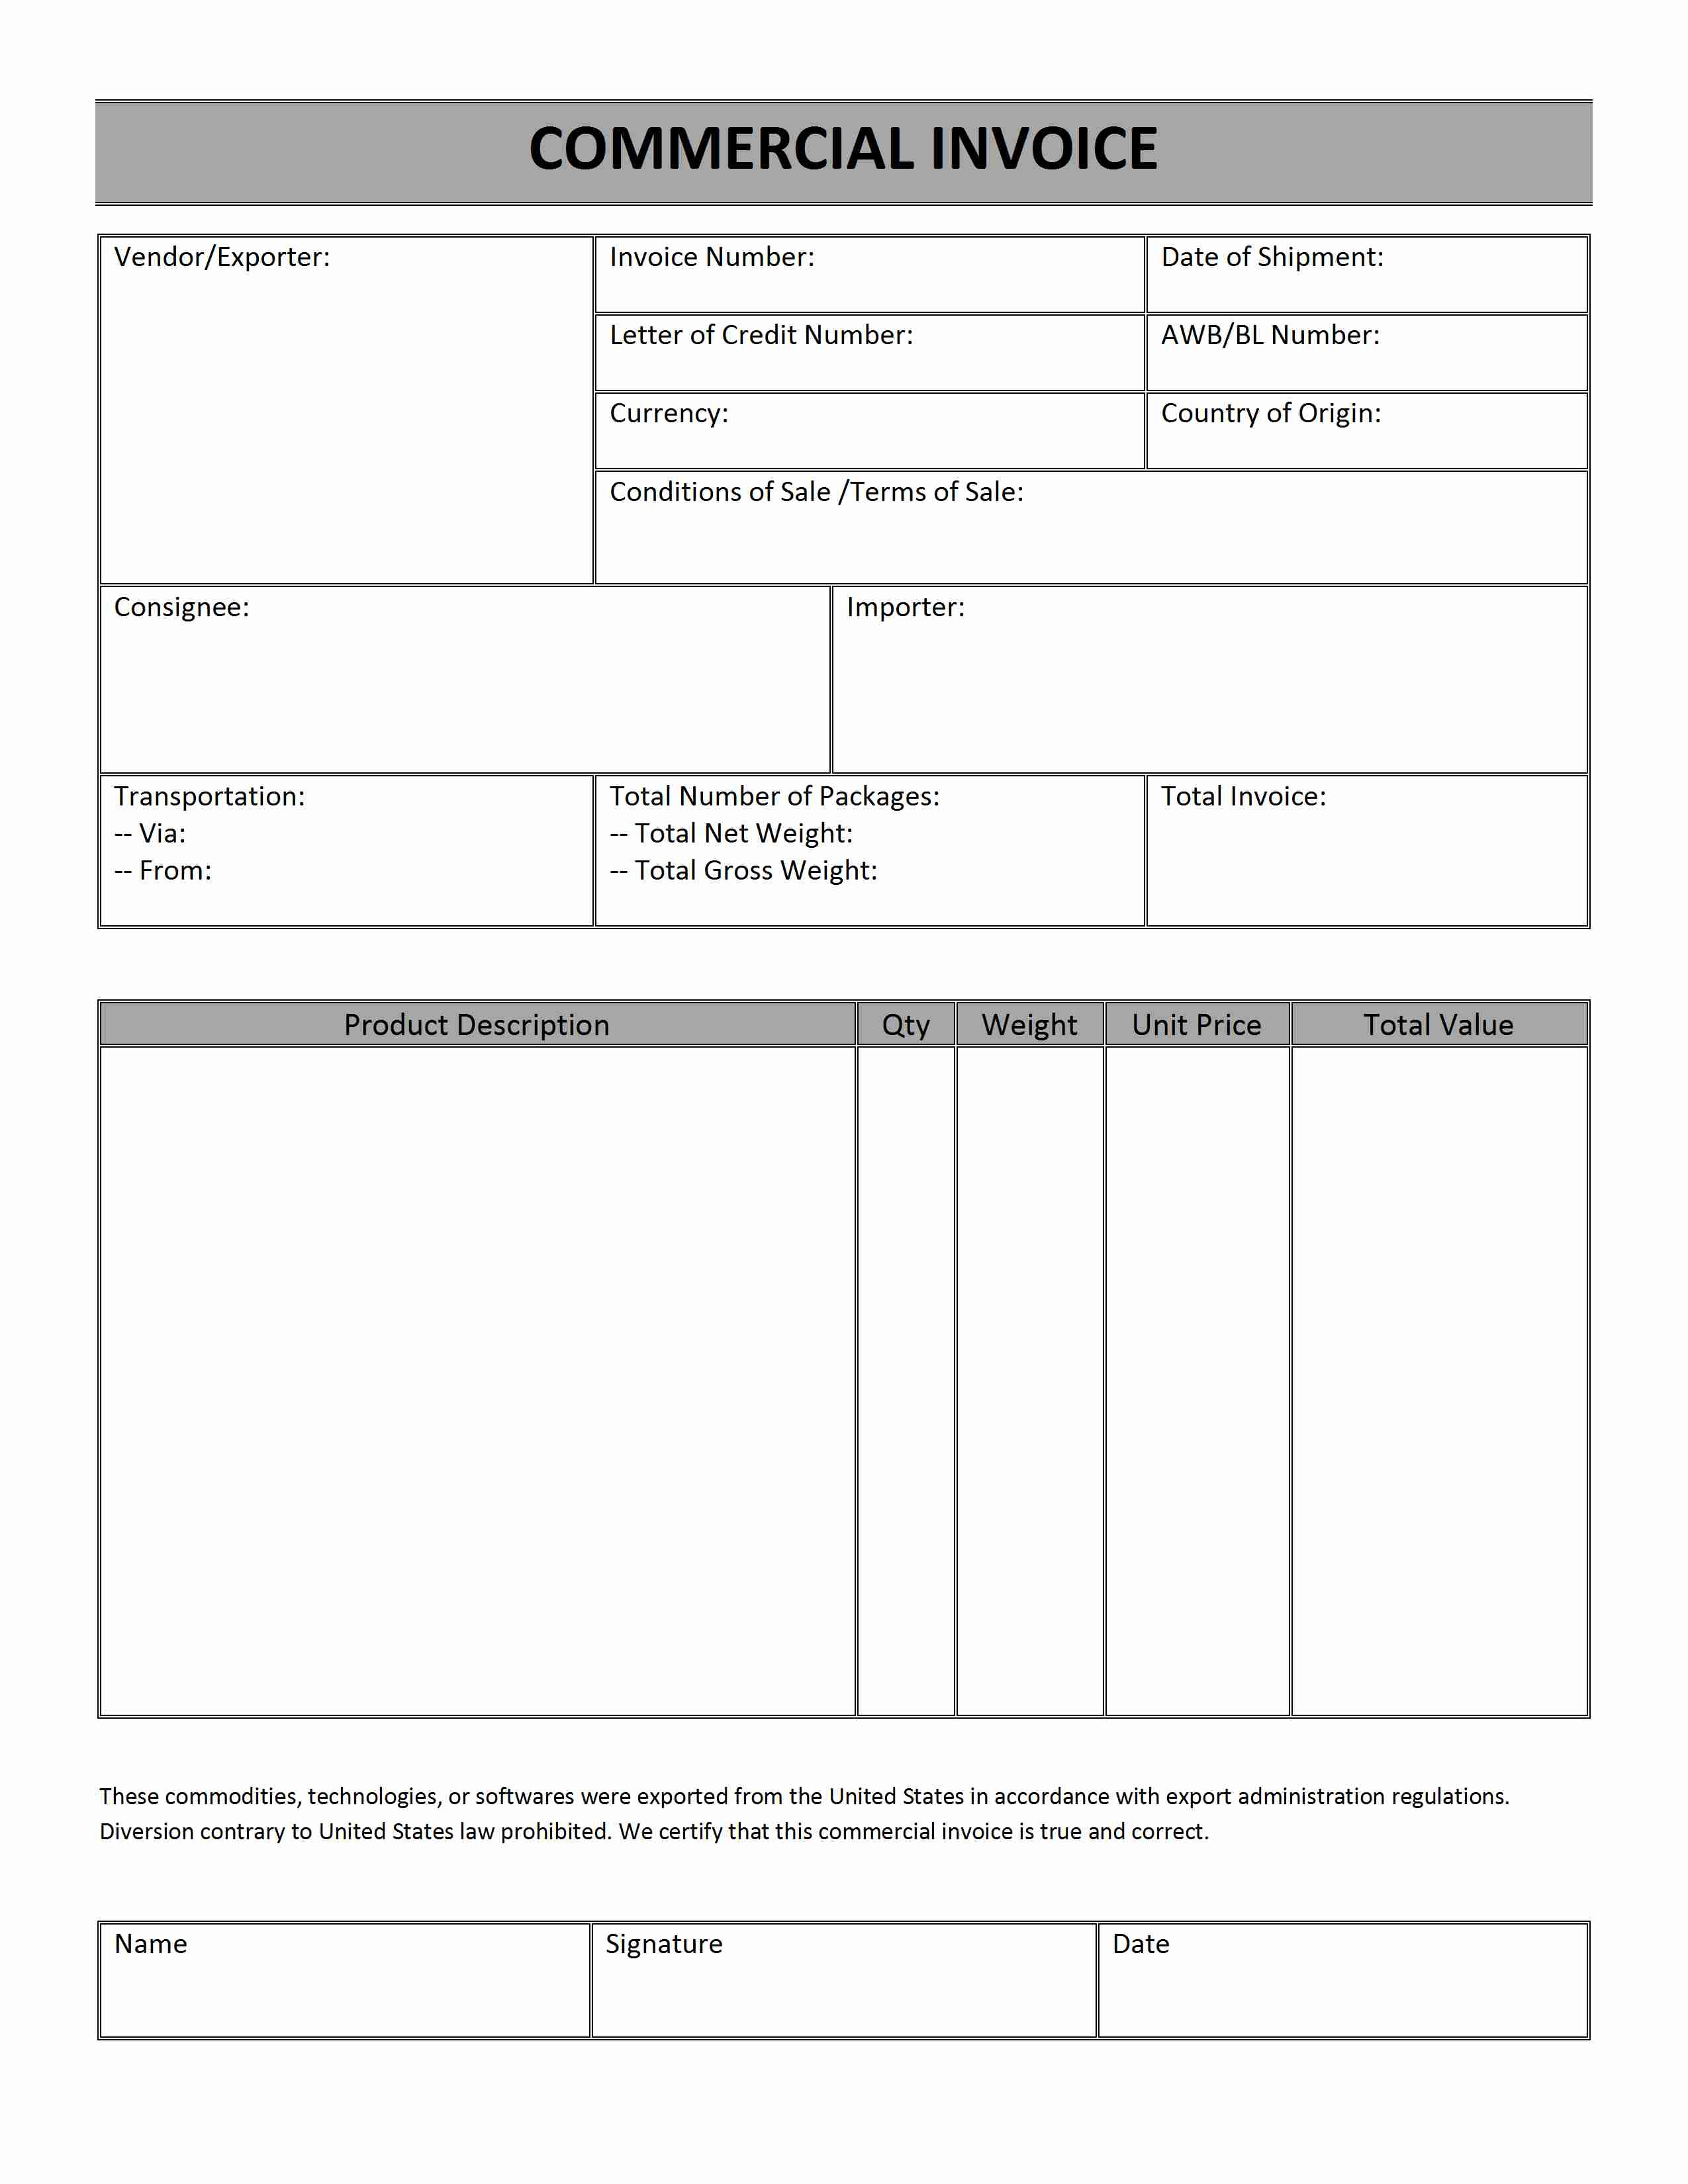 Weirdmailus  Scenic Printable Sales Invoice Simple Invoice Form Free Invoice  With Outstanding Printable Receipt Free  Free Printable Raffle Tickets  Receipt   Printable With Astonishing Invoice Printing Company Also Invoice Matching In Addition Factory Invoice Price Vs Msrp And Definition Of An Invoice As Well As Blank Printable Invoice Additionally Honda Pilot Invoice From Happytomco With Weirdmailus  Outstanding Printable Sales Invoice Simple Invoice Form Free Invoice  With Astonishing Printable Receipt Free  Free Printable Raffle Tickets  Receipt   Printable And Scenic Invoice Printing Company Also Invoice Matching In Addition Factory Invoice Price Vs Msrp From Happytomco